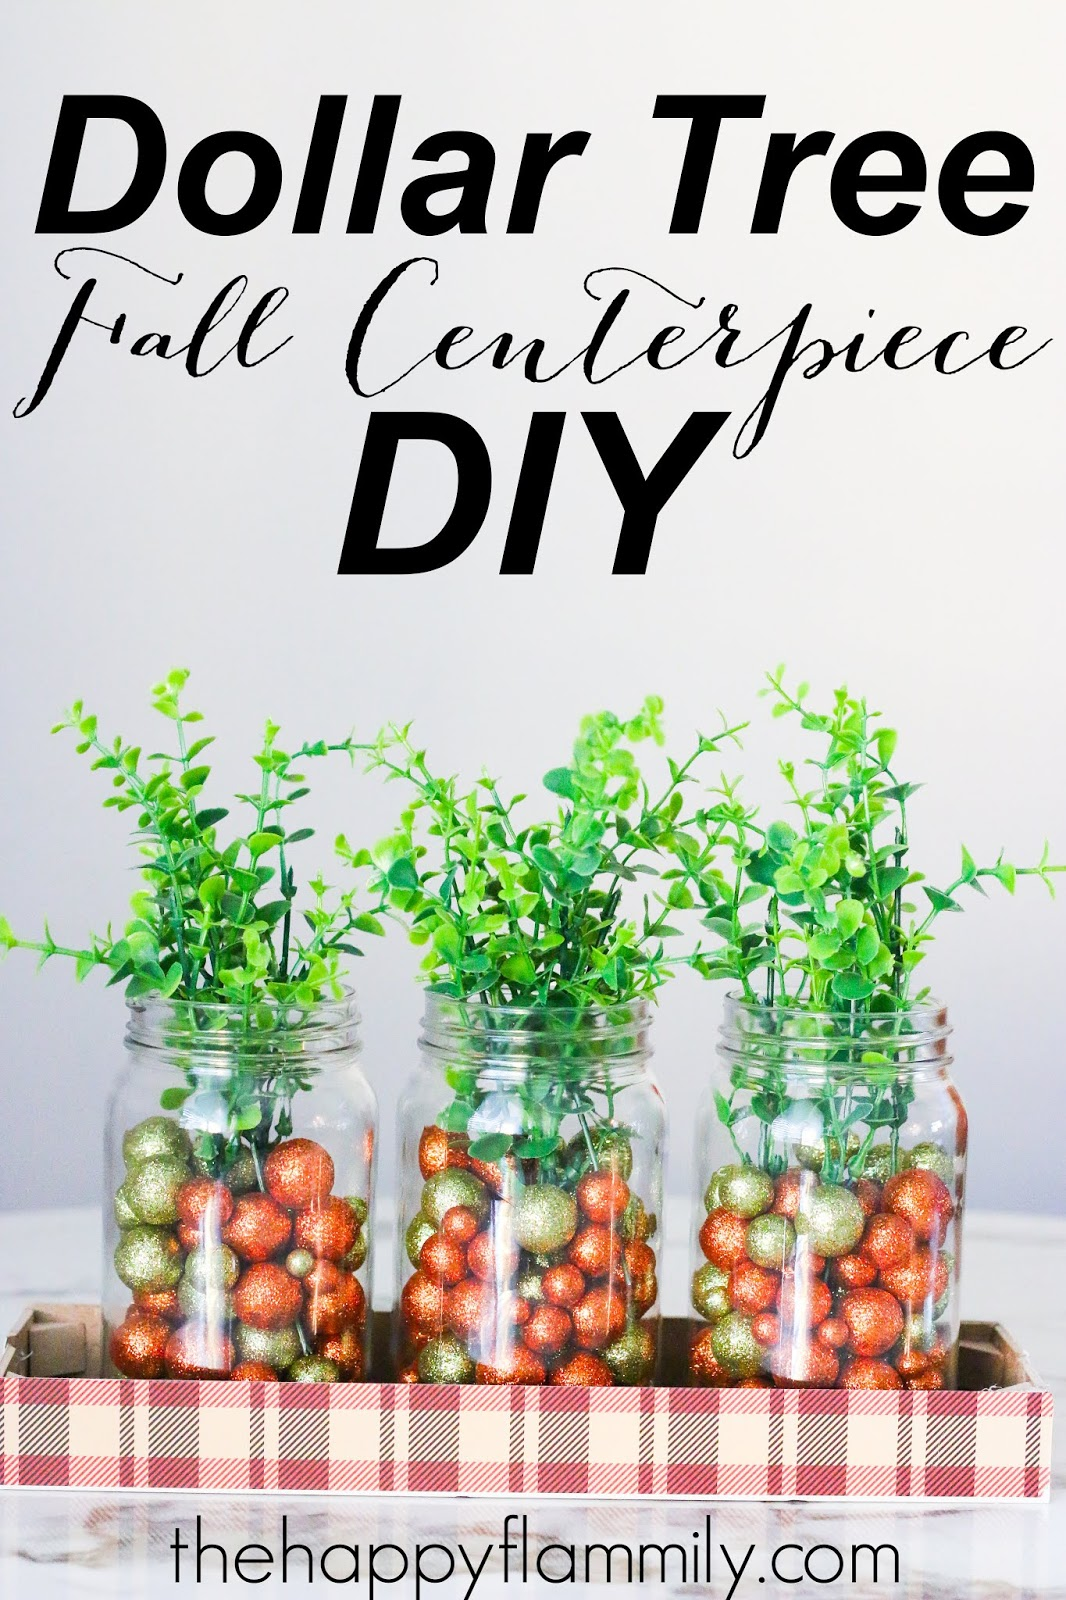 Dollar Tree Fall Centerpiece Diy The Happy Flammily